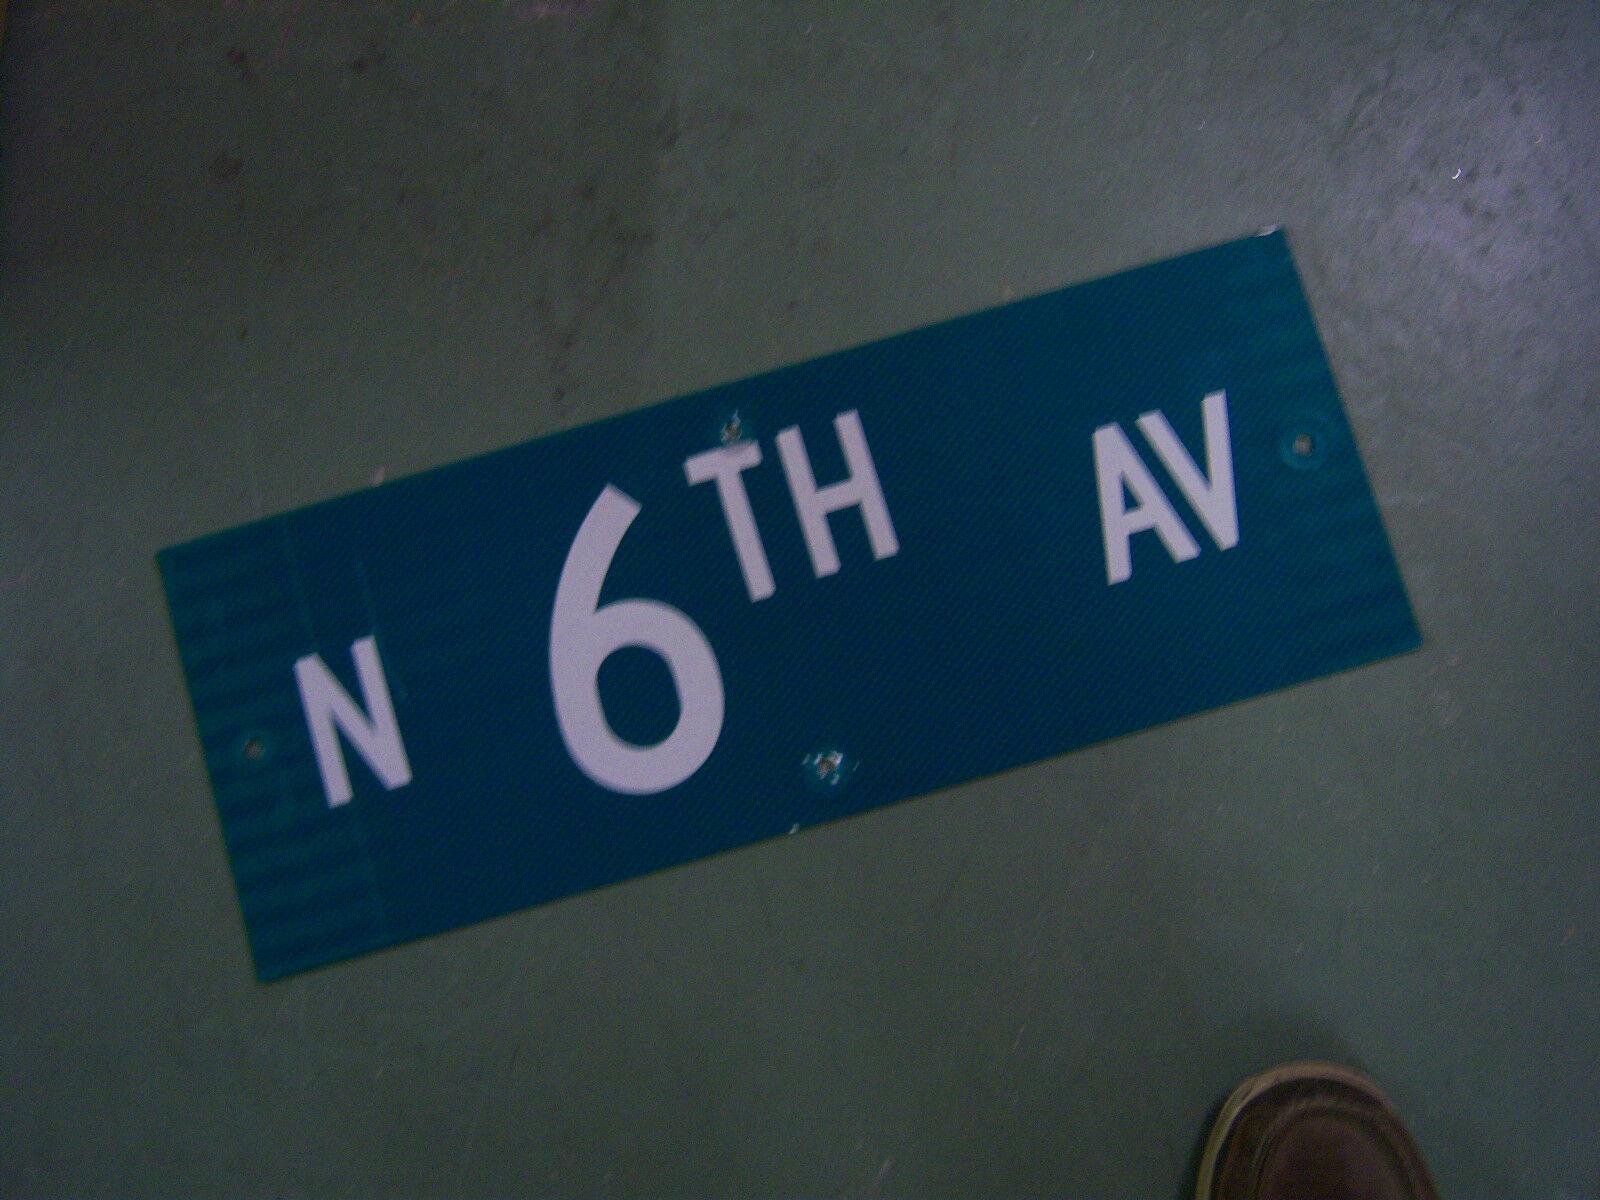 "Vintage ORIGINAL N. 6TH AV STREET SIGN 24' X 6"" WHITE ON GREEN BACKGROUND"